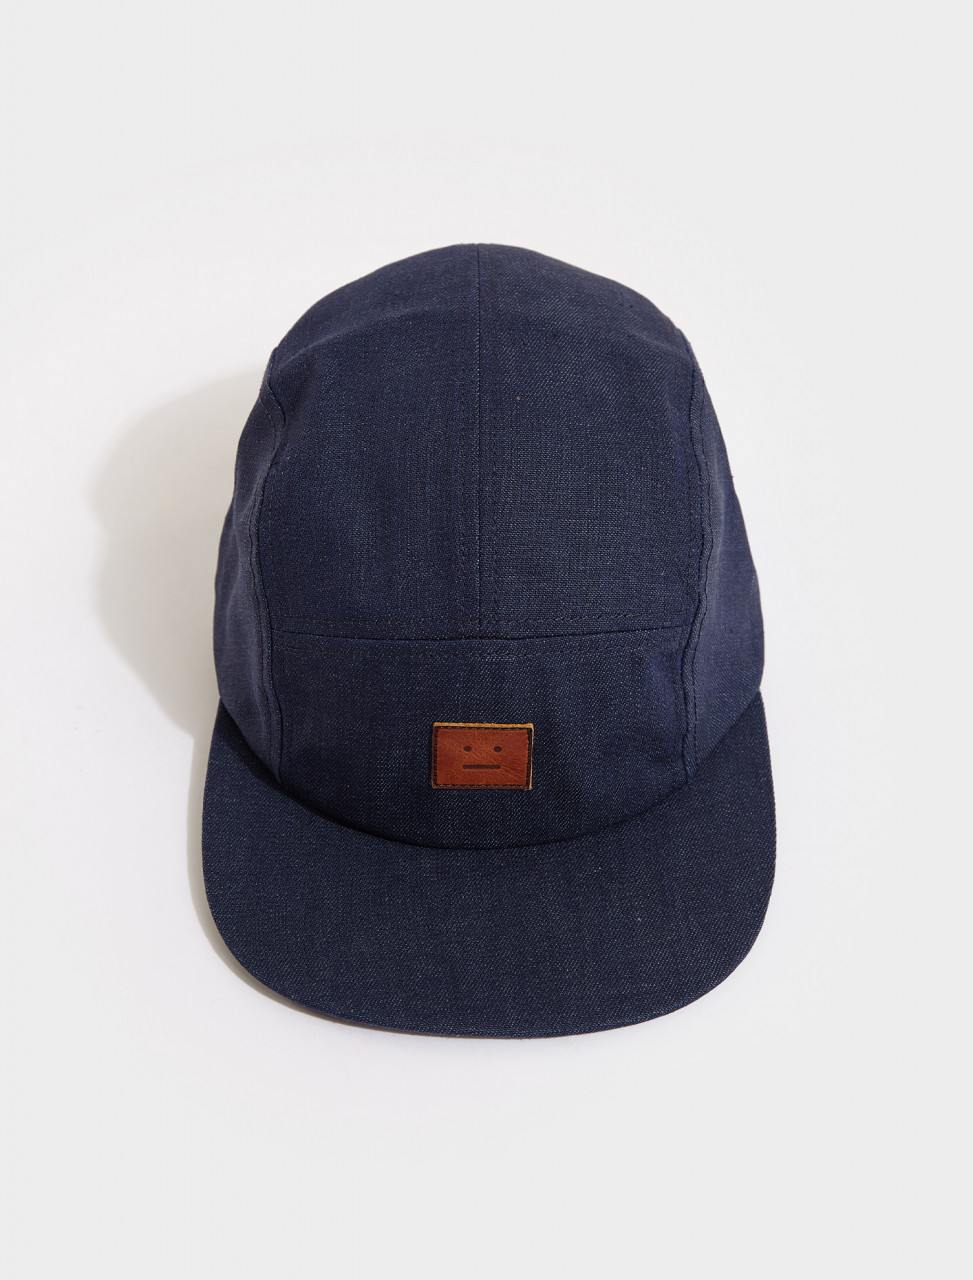 C40125-135 ACNE STUDIOS CRUNN DENIM FACE CAP INDIGO BLUE